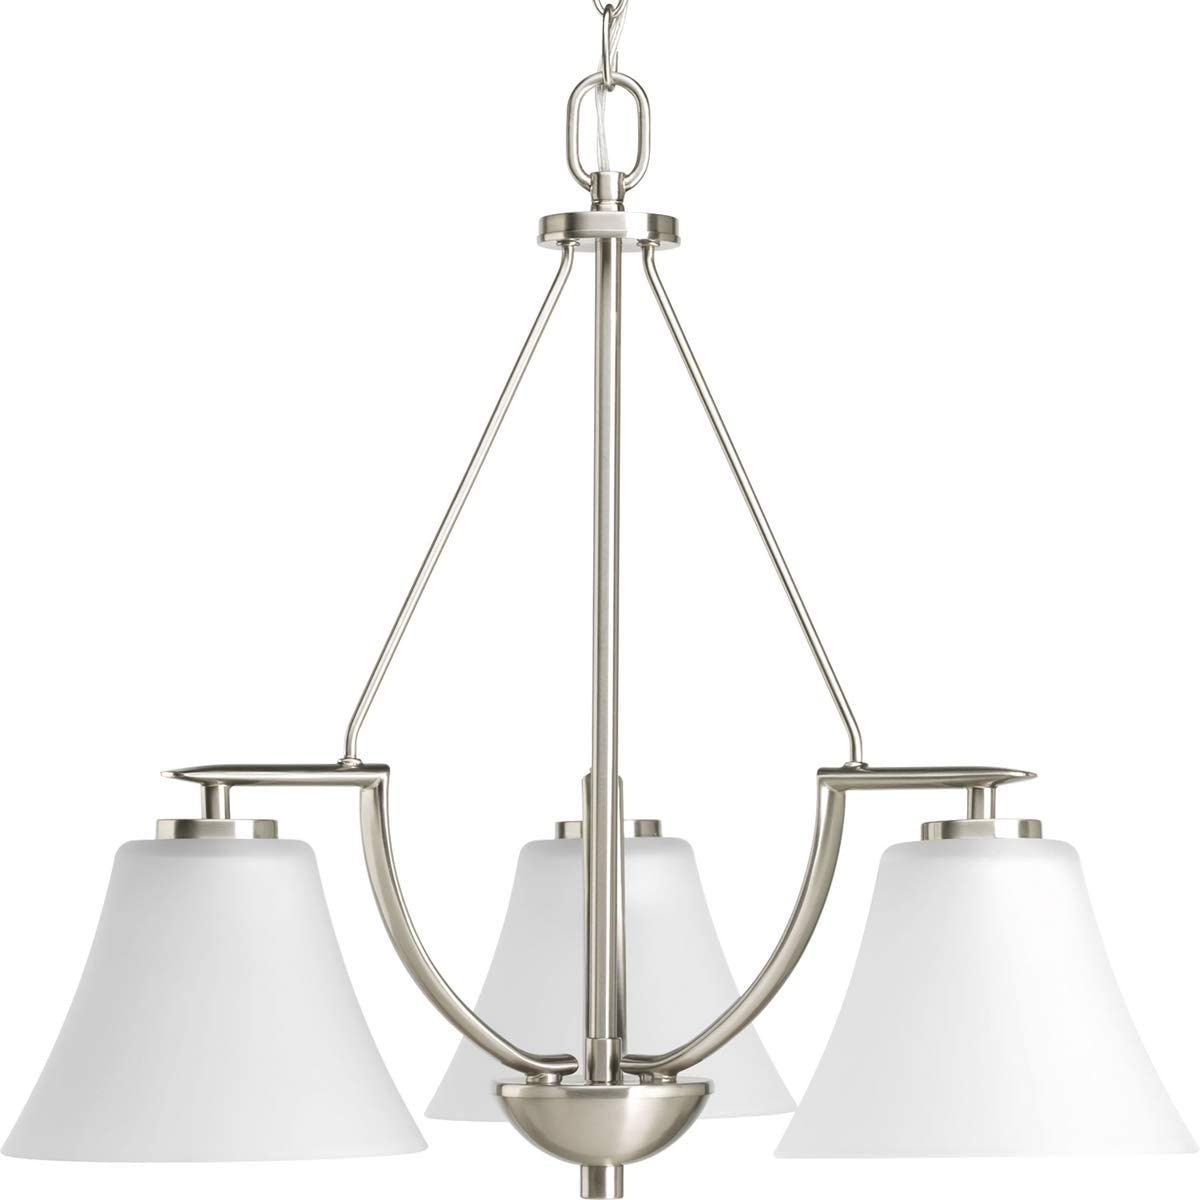 Progress Lighting P4621-09 Bravo Collection 3-Light Chandelier, Brushed Nickel